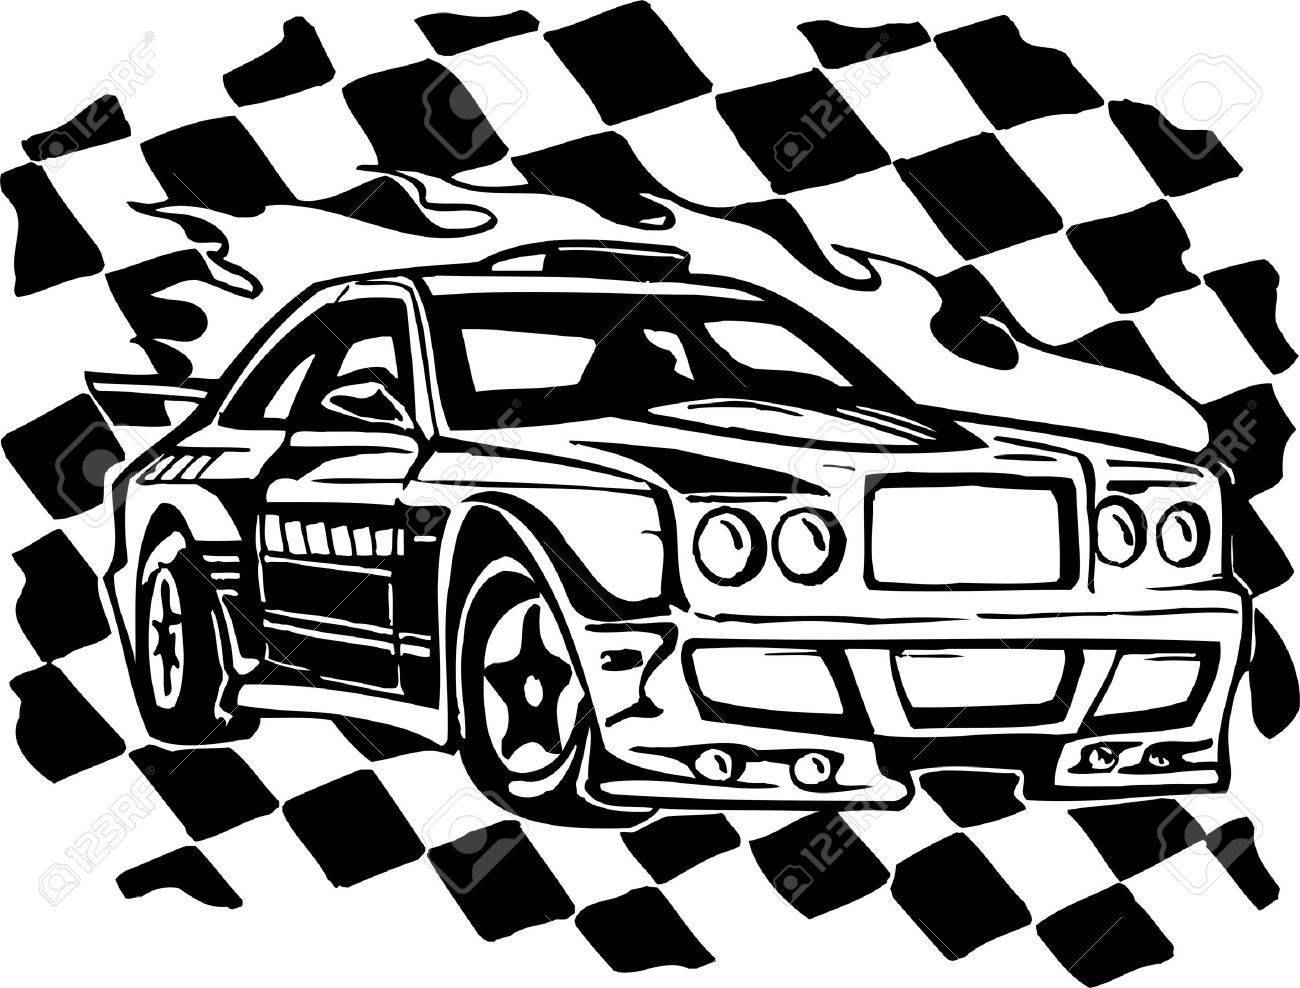 Street Racing Cars Illustration Ready For Vinyl Cutting Royalty Free Cliparts Vectors And Stock Illustration Image 8682375